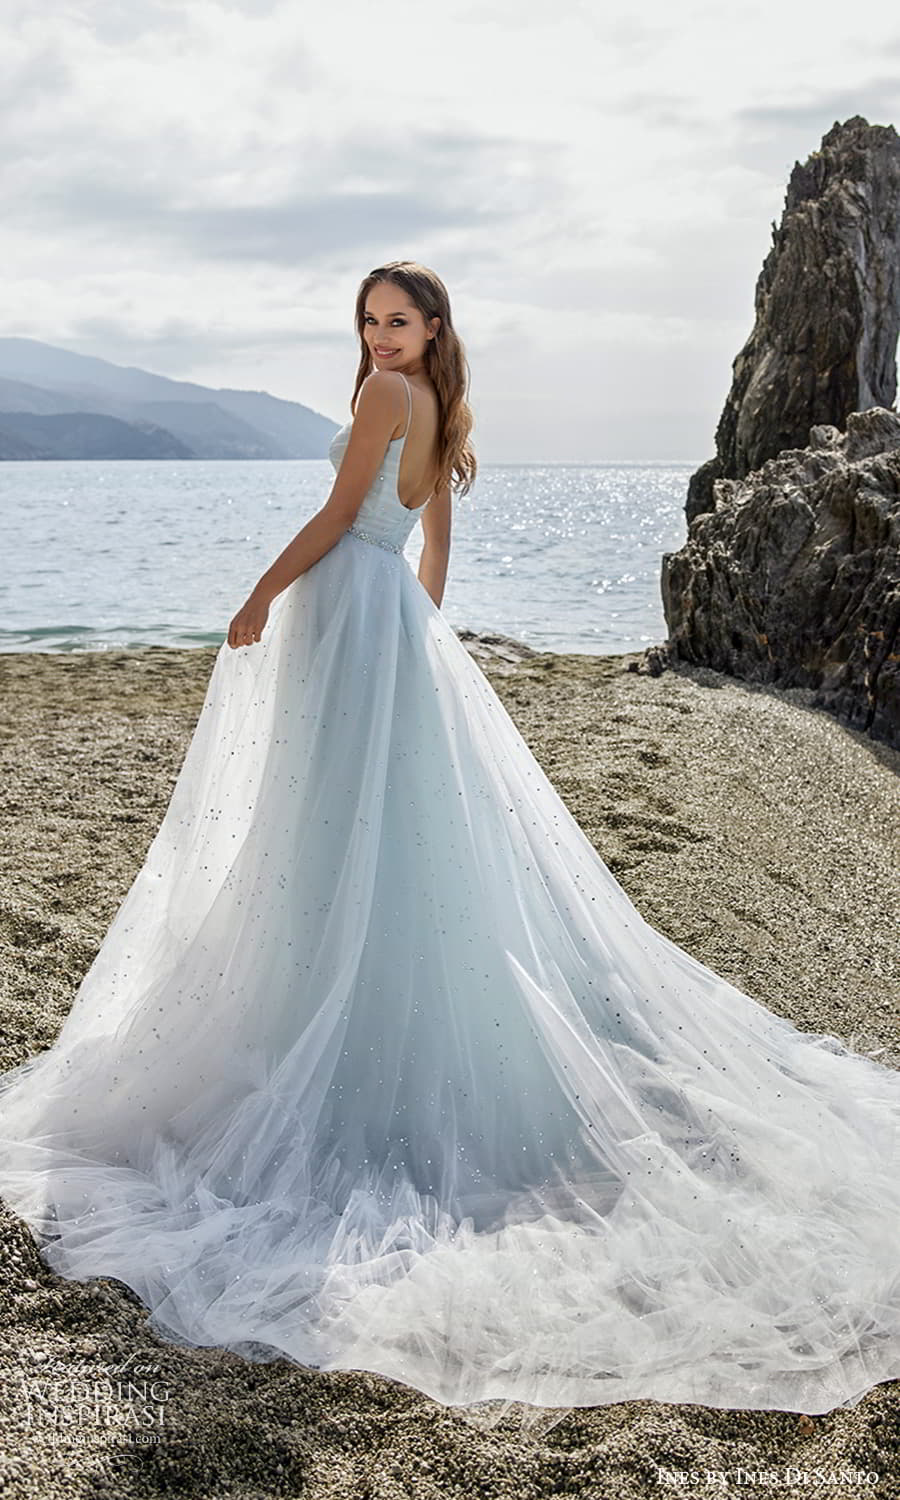 ines ines di santo spring 2022 bridal sleeveless straps scoop neckline ruched bodice a line ball gown wedding dress chapel train (13) bv